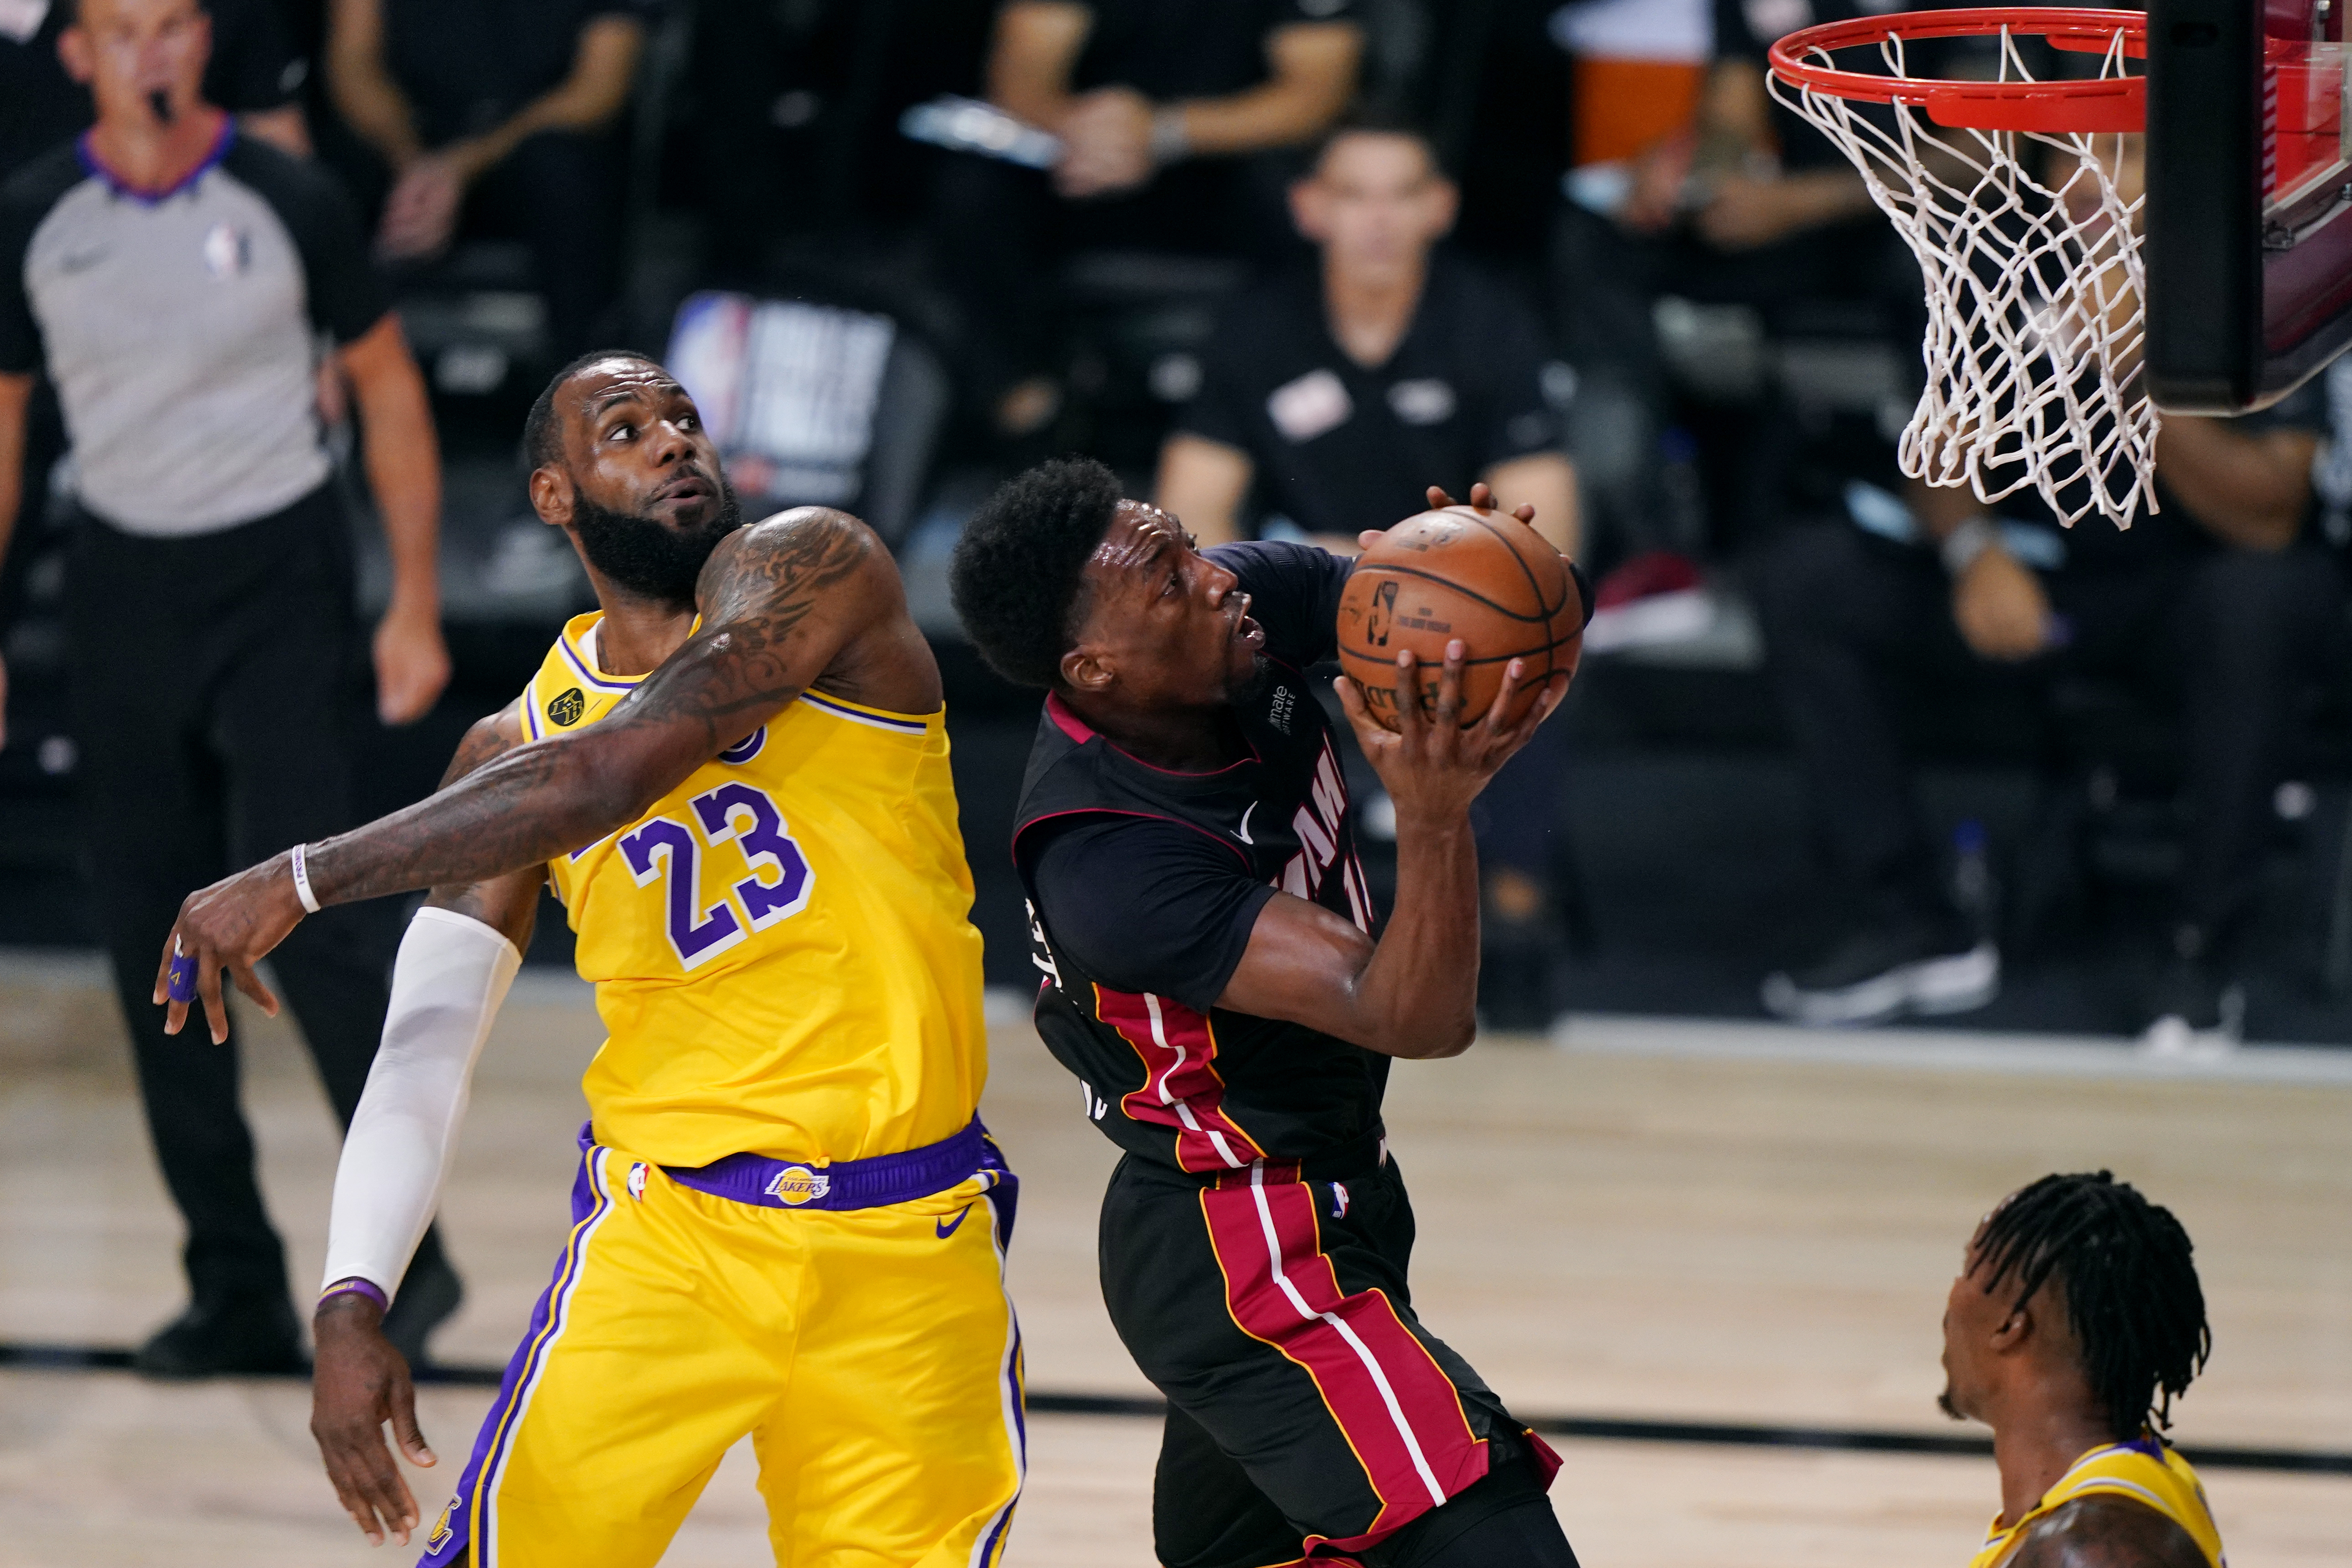 Nba Live Stream 2020 Watch Lakers Vs Heat Nba Finals Online Free Rolling Stone